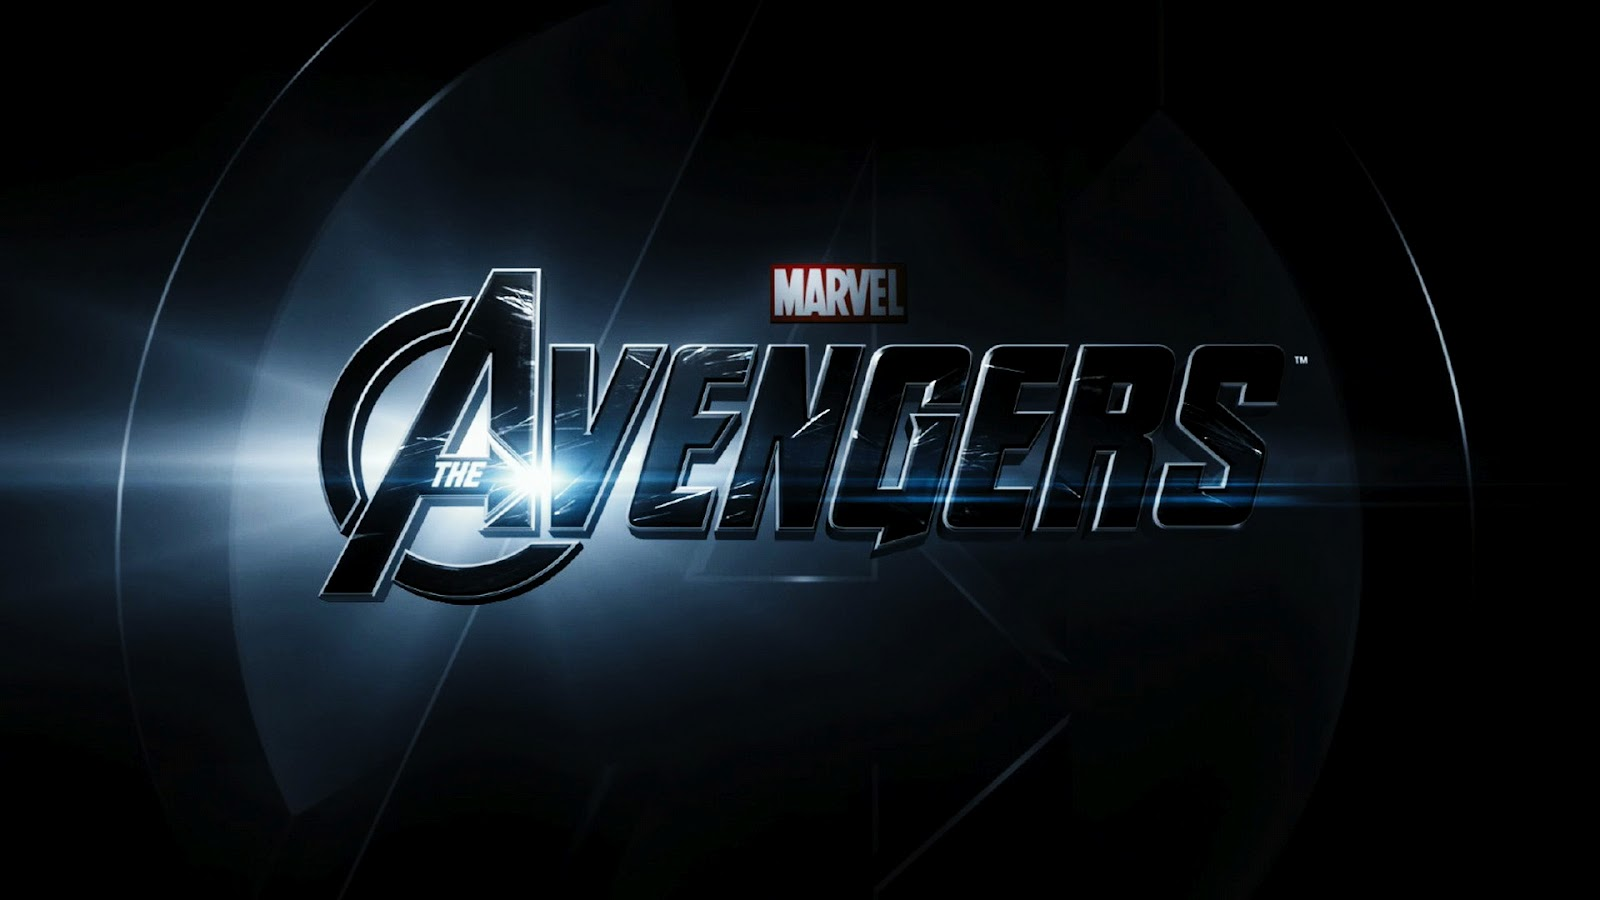 Marvel The Avengers Logo Hd Wallpaper Marvel 1600x900 Download Hd Wallpaper Wallpapertip